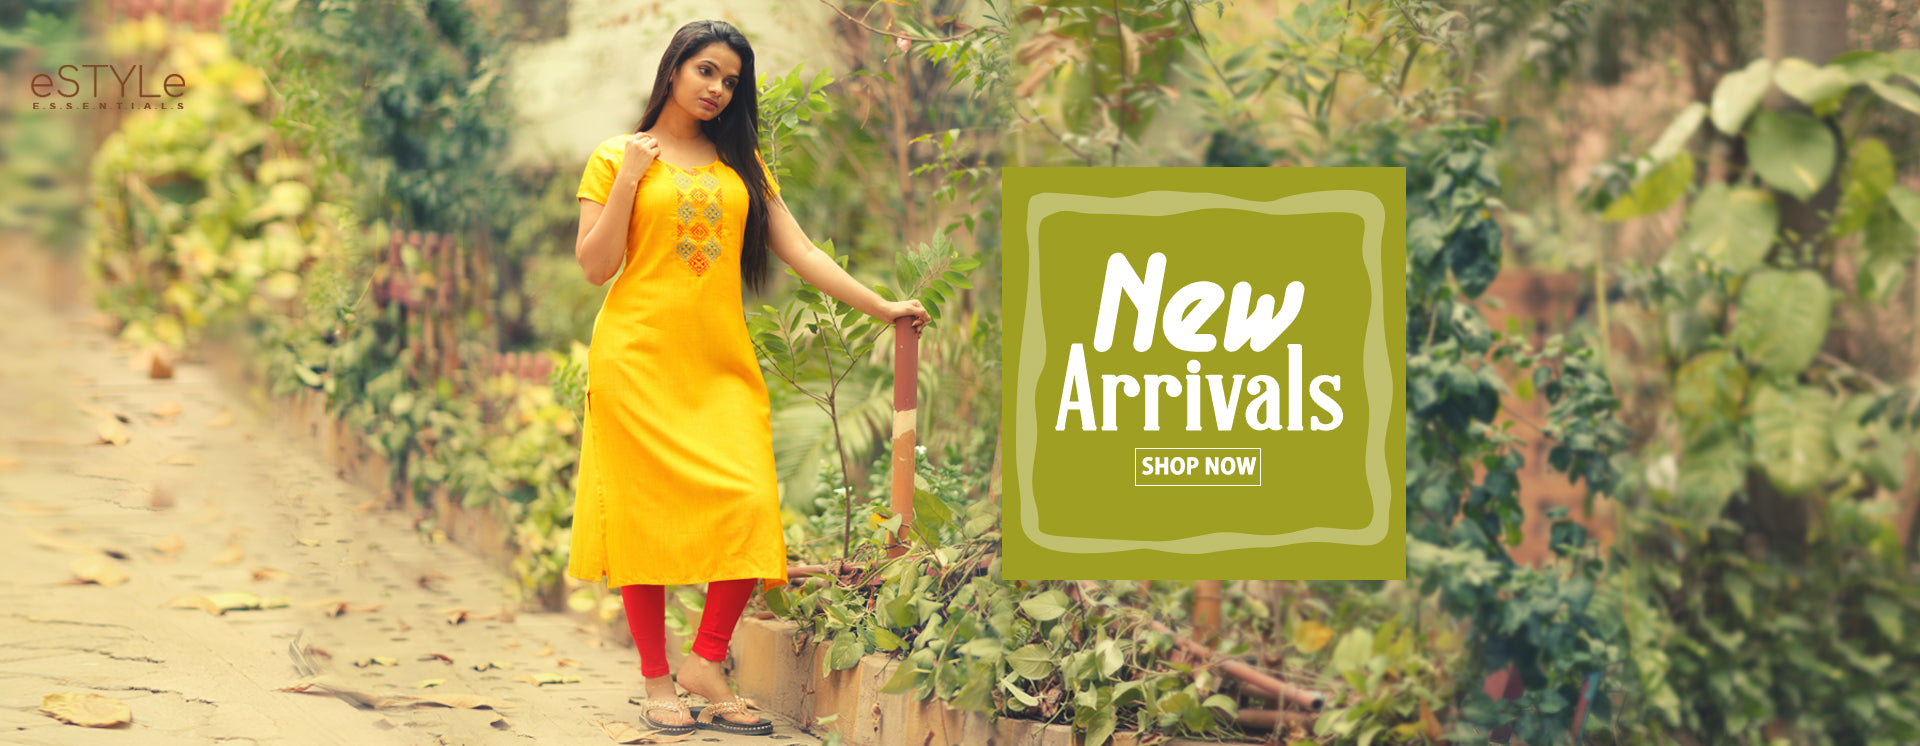 b9e271e8d5 Buy Designer Women Kurtas, Trendy Salwar Kameez, Leggings, Indian Ethnic  Jewellery & Fashion Handbags India - Fashion Equation – Fashionequation